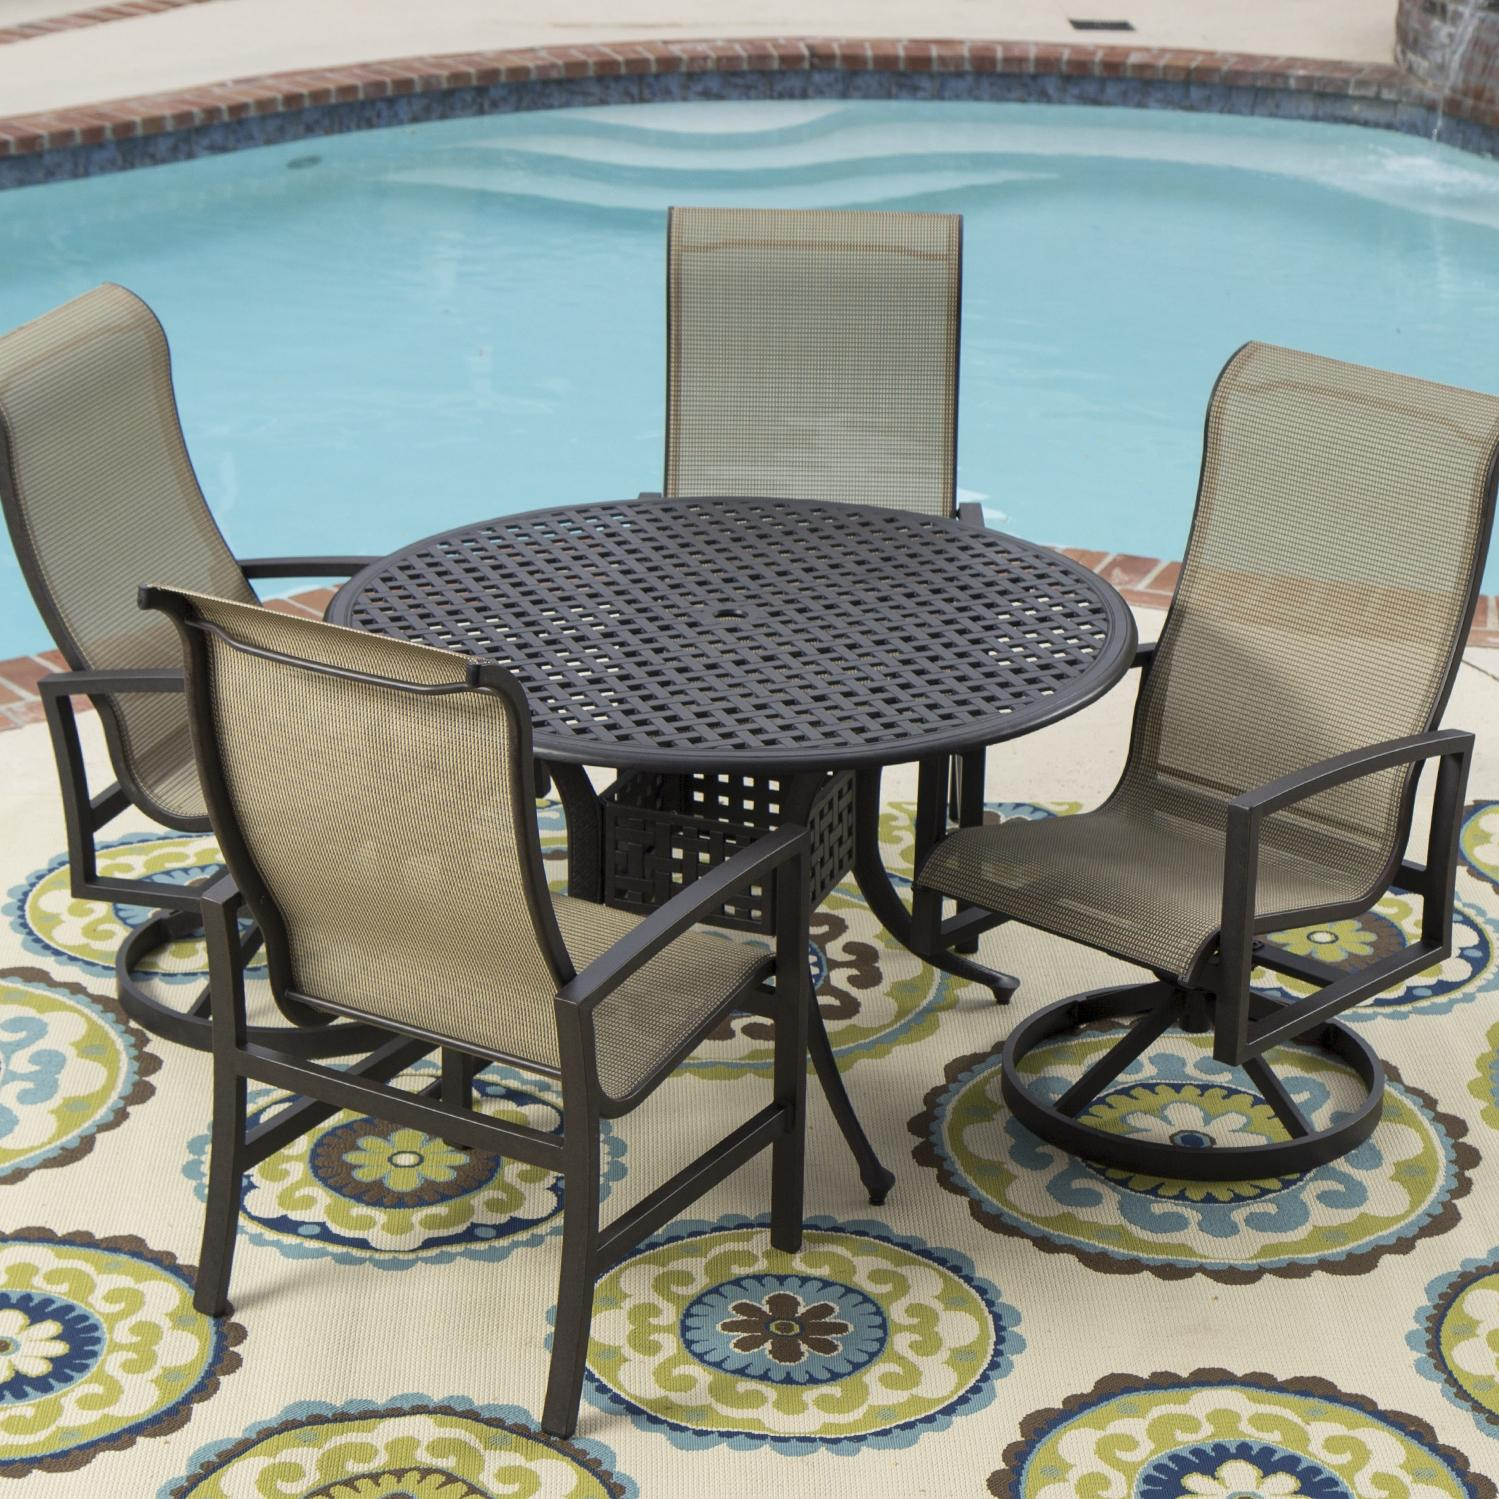 Picture of Acadia 4-Person Sling Patio Dining Set With 2 Swivel Rockers And Round Table By Lakeview Outdoor Designs